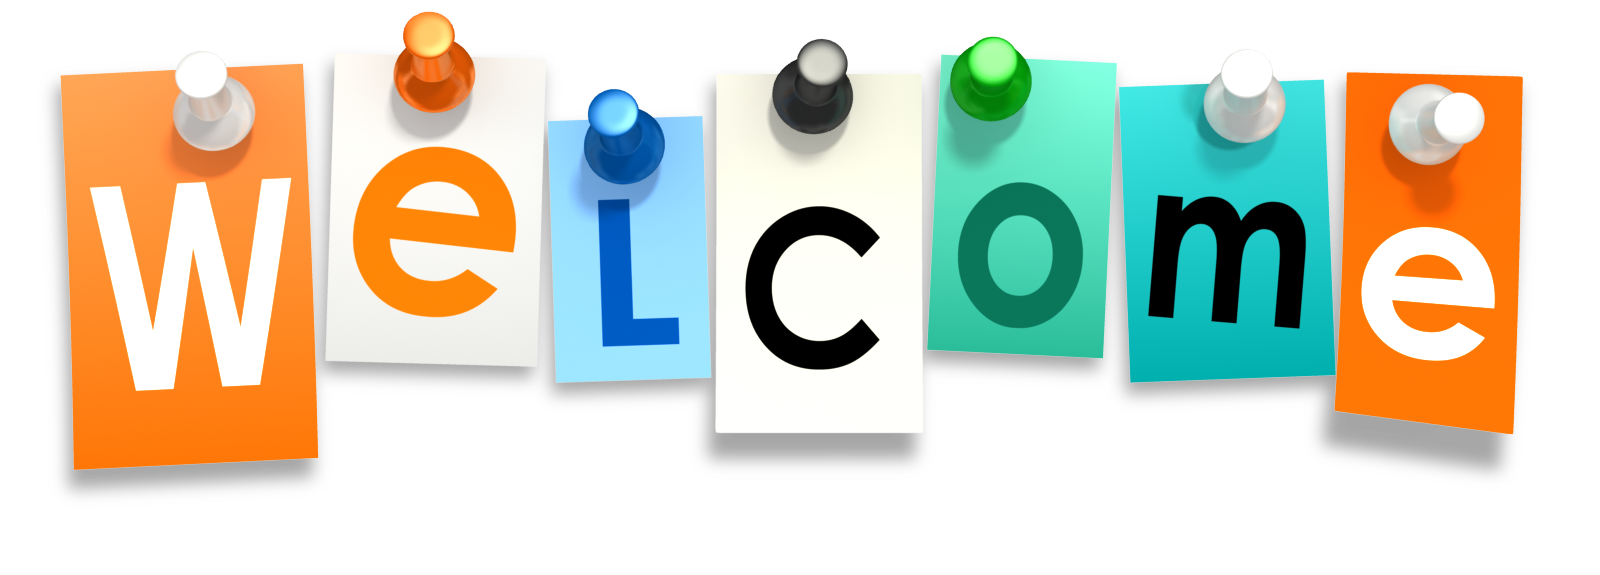 Png images pluspng image. Transparent welcome free stock